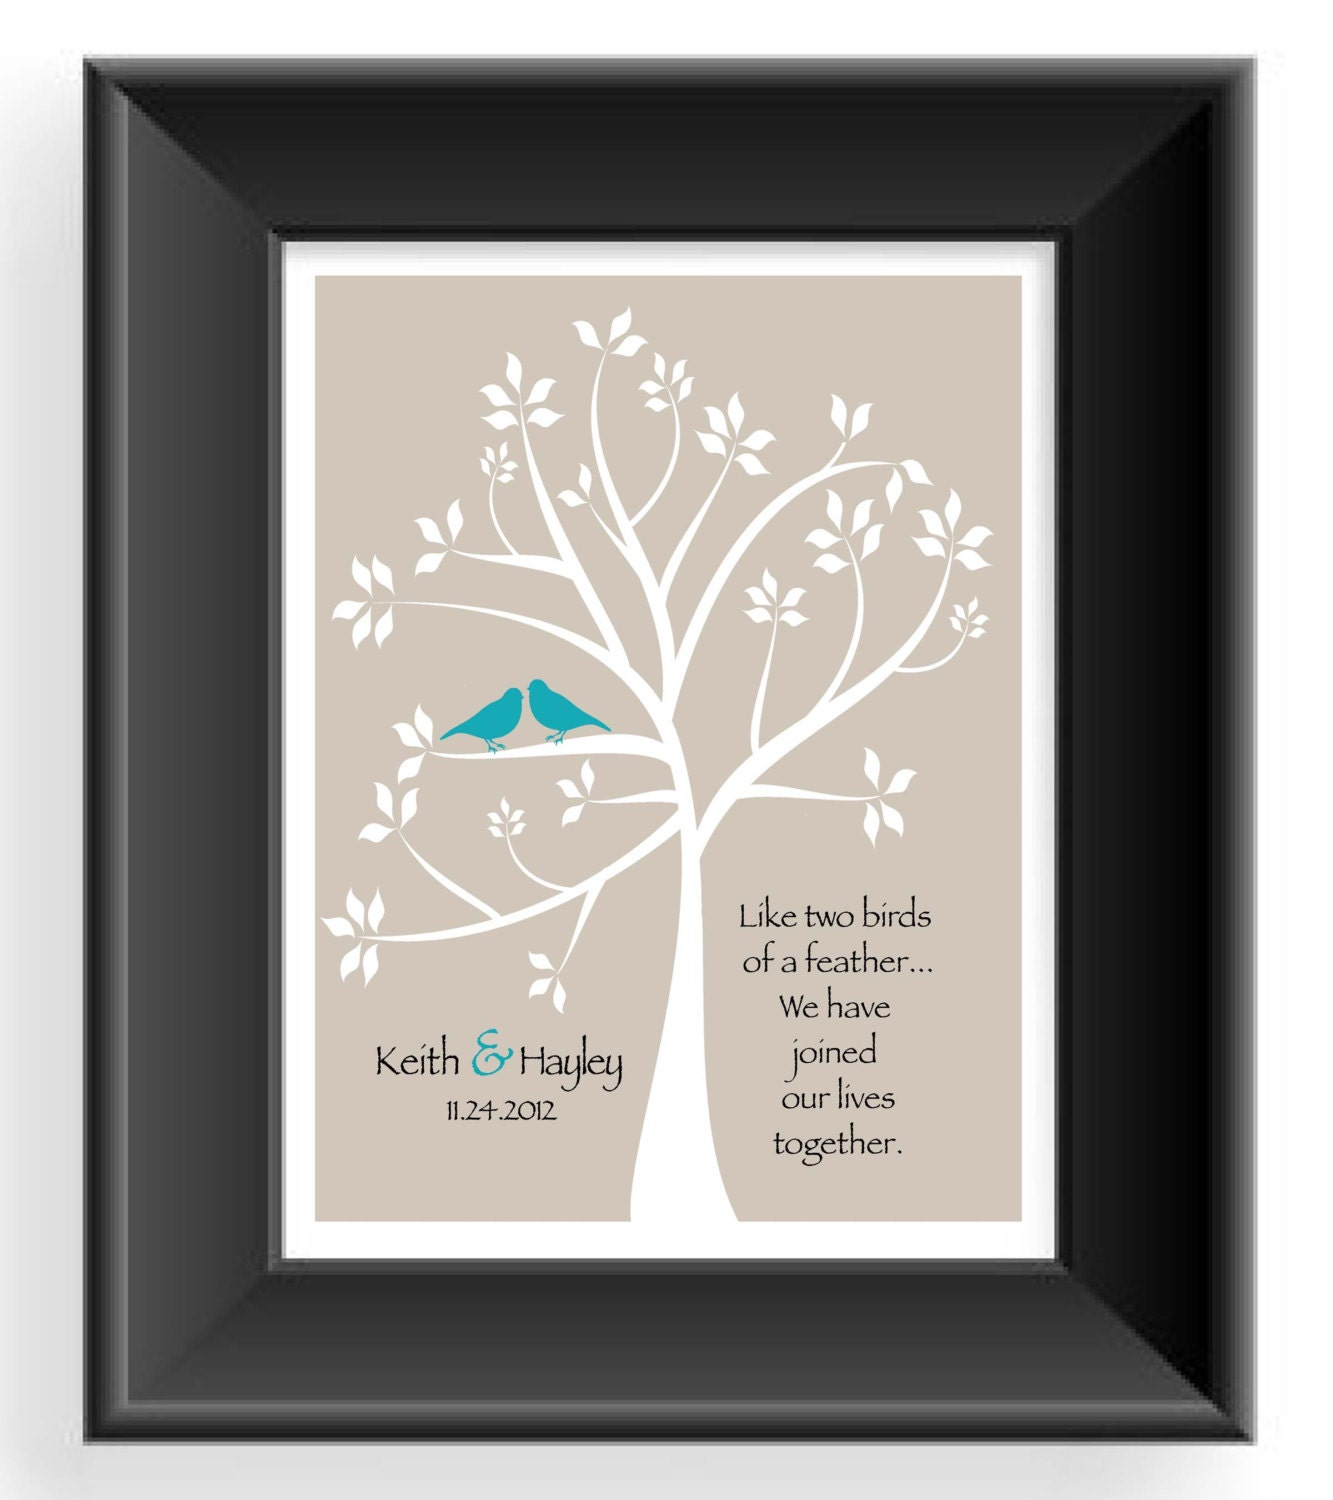 1st Wedding Anniversary Gifts Husband : First Anniversary Gift- Gift for Husband- Custom Couple Gift -Wedding ...